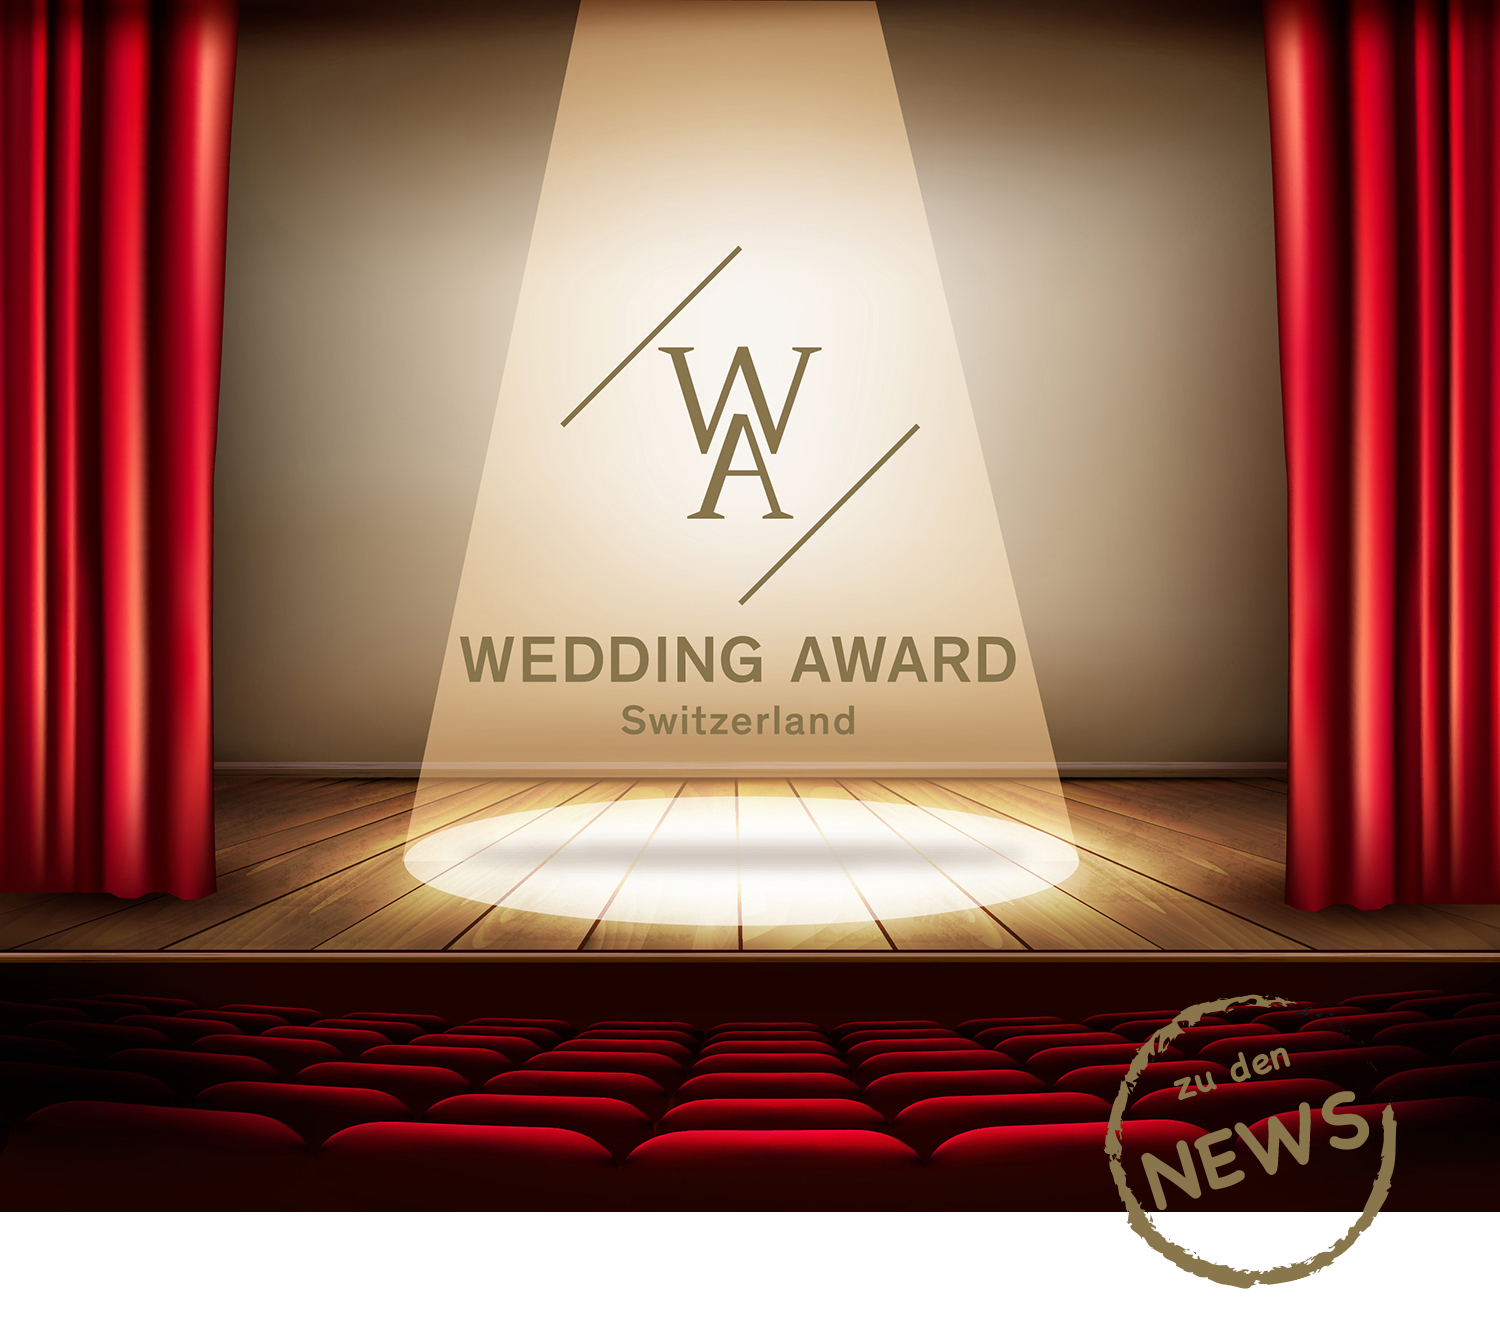 Wedding Award 2016